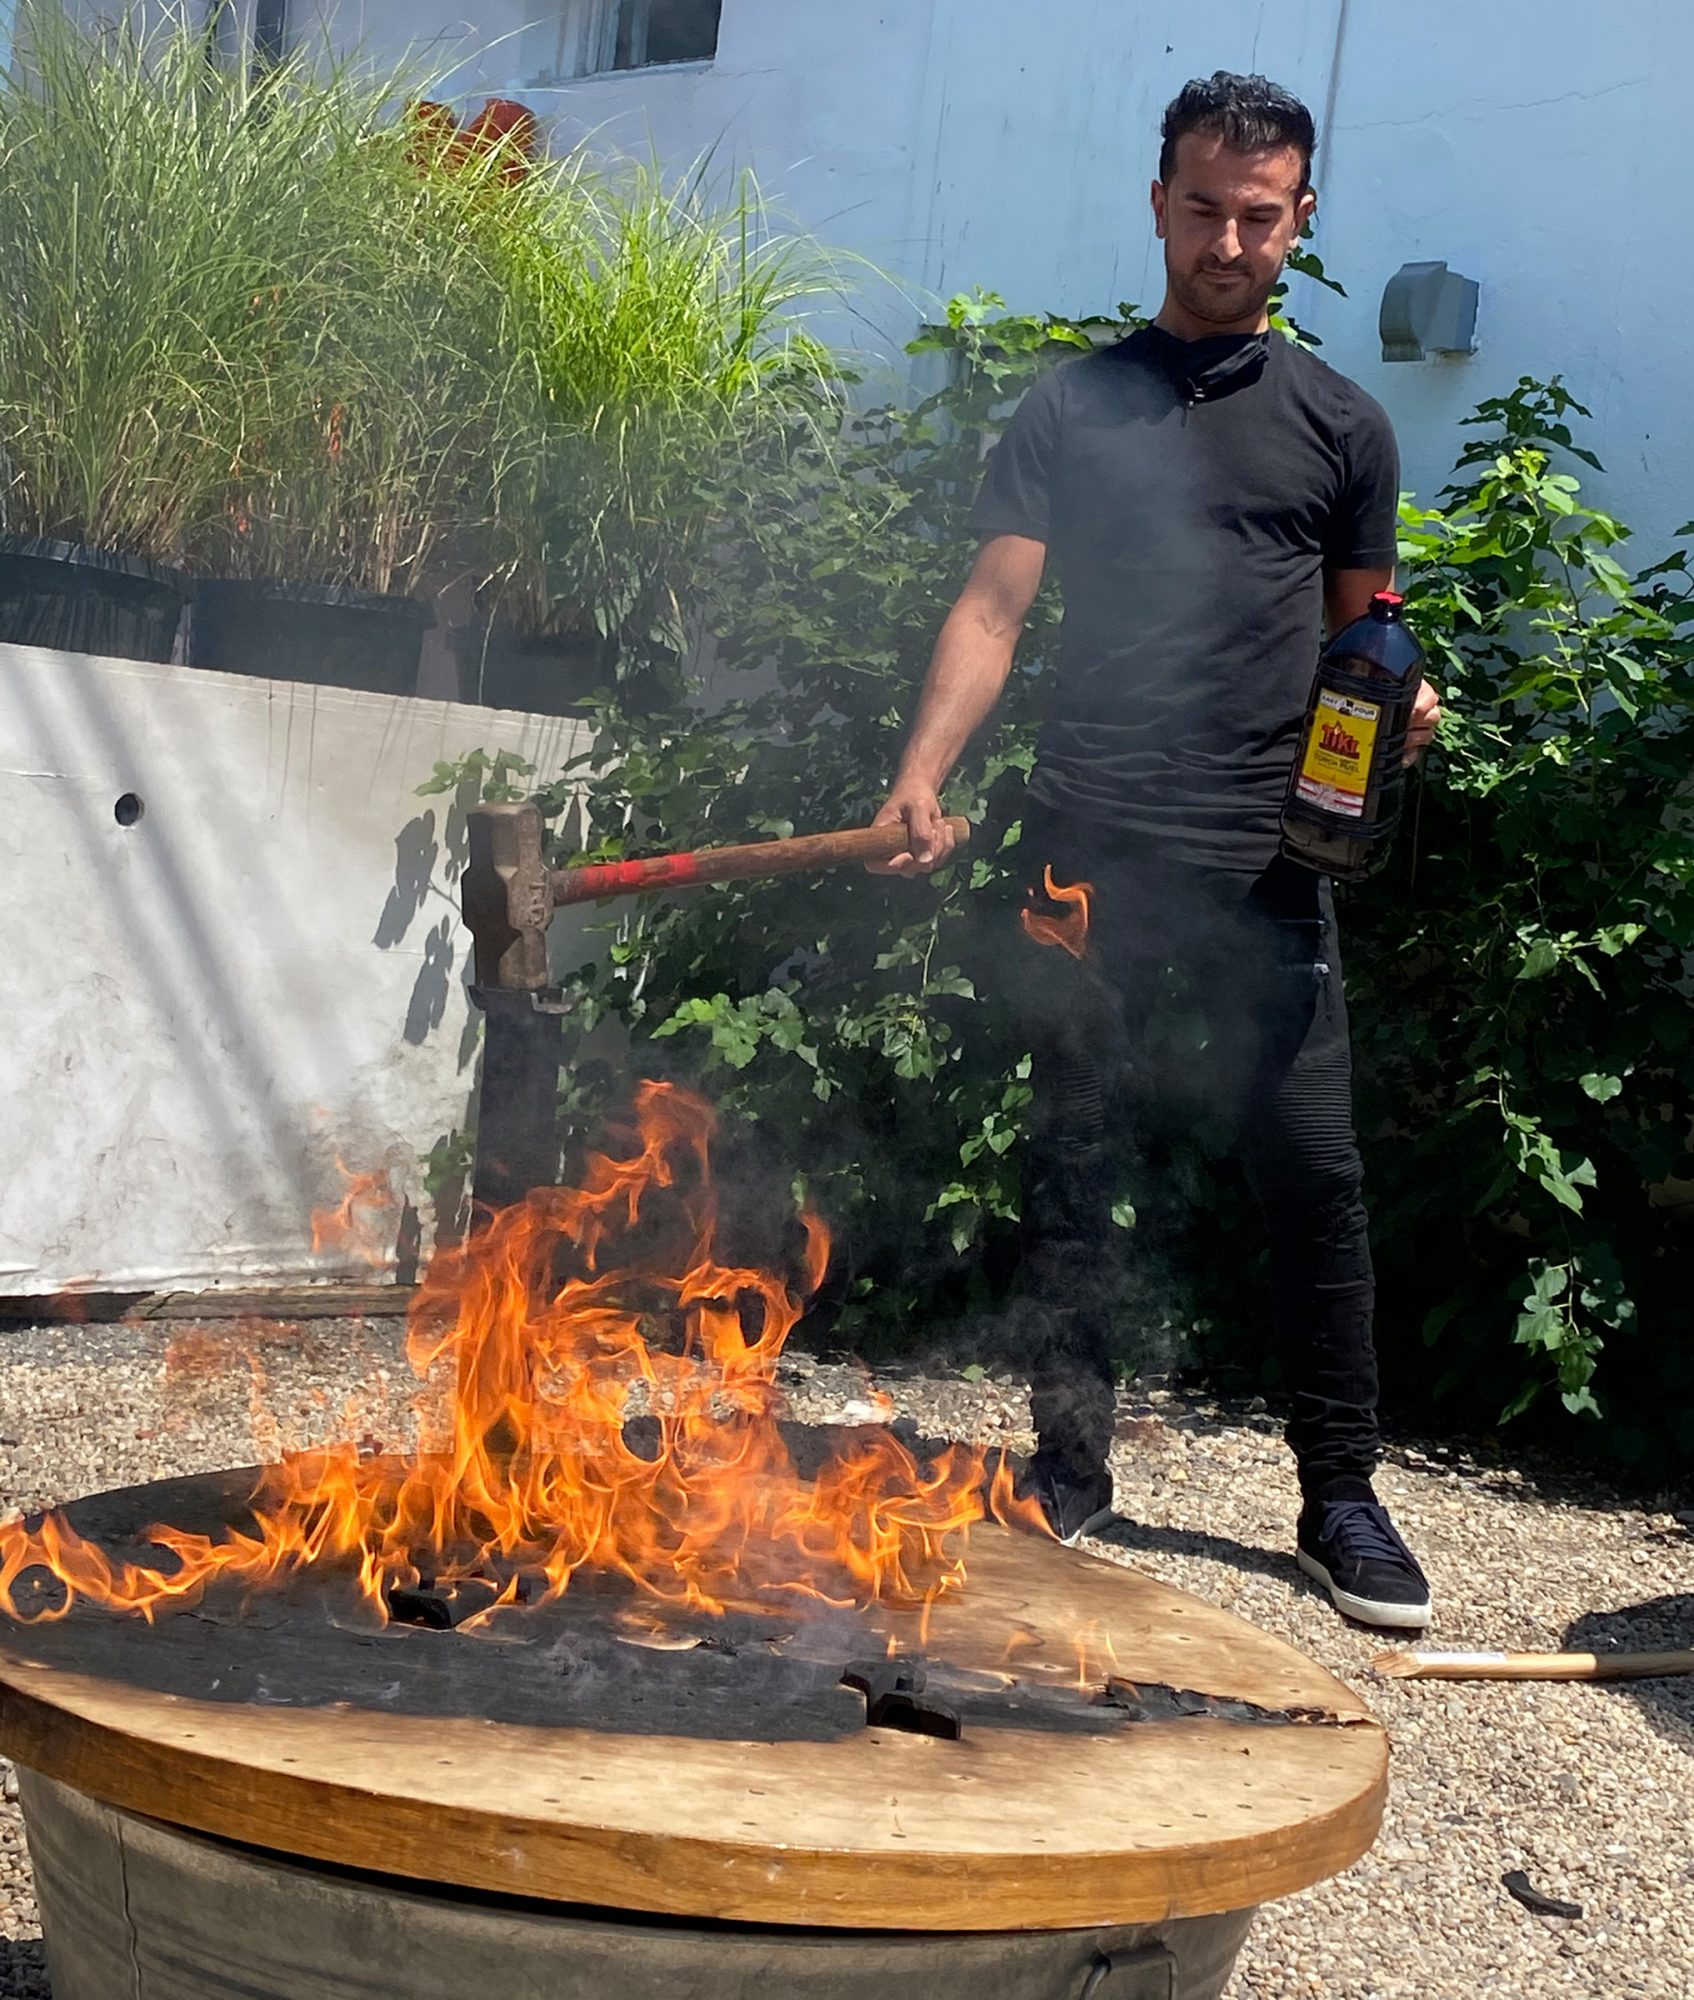 75 Main in South Hampton - Restaurant Owner Sets Fire to Table Where Harvey Weinstein and Jeffrey Epstein Sat